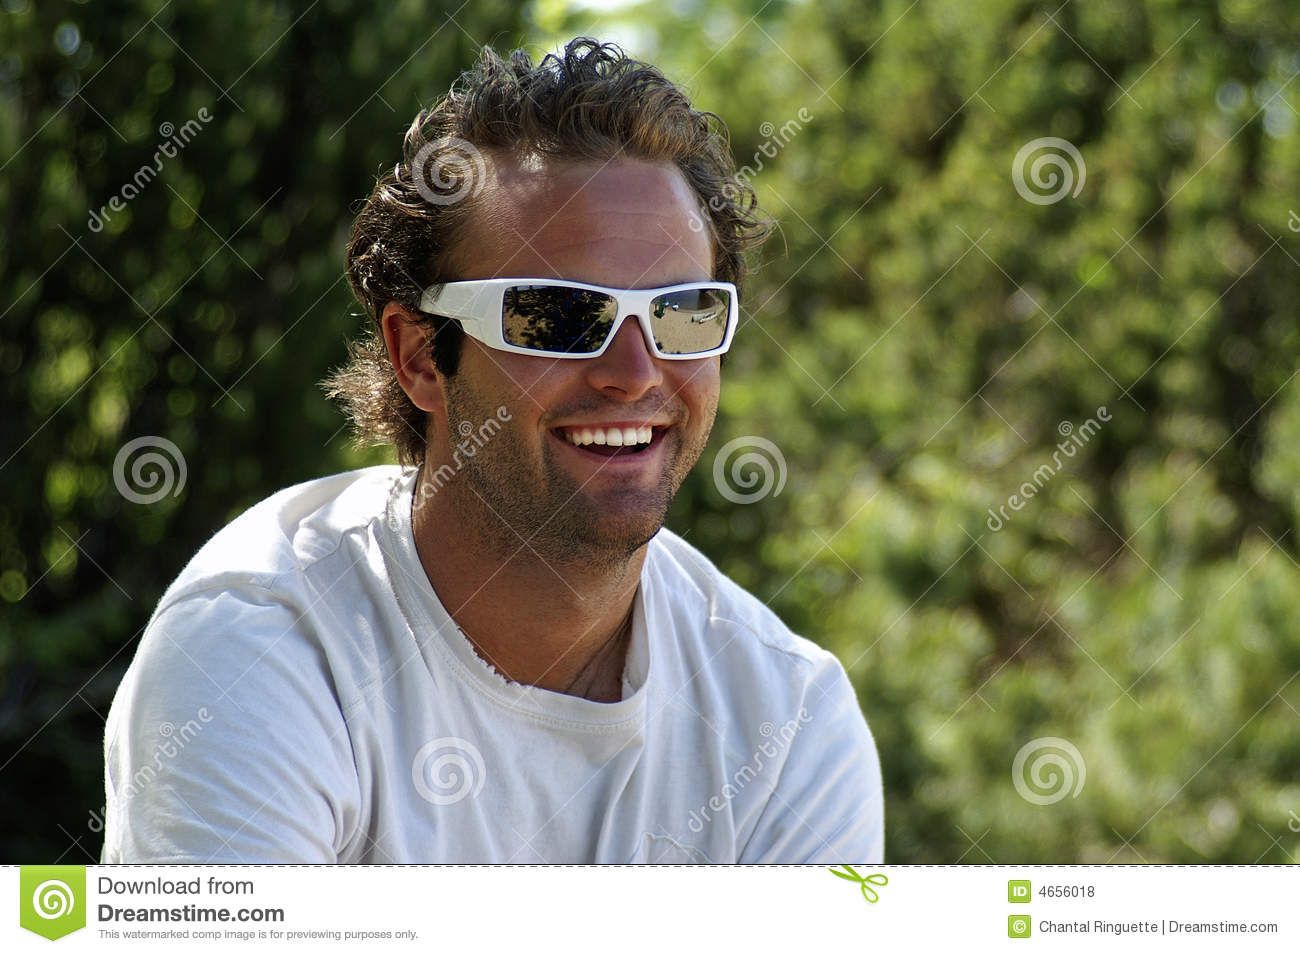 Ruggedly handsome young man with sunglasses Handsome Rugged Man